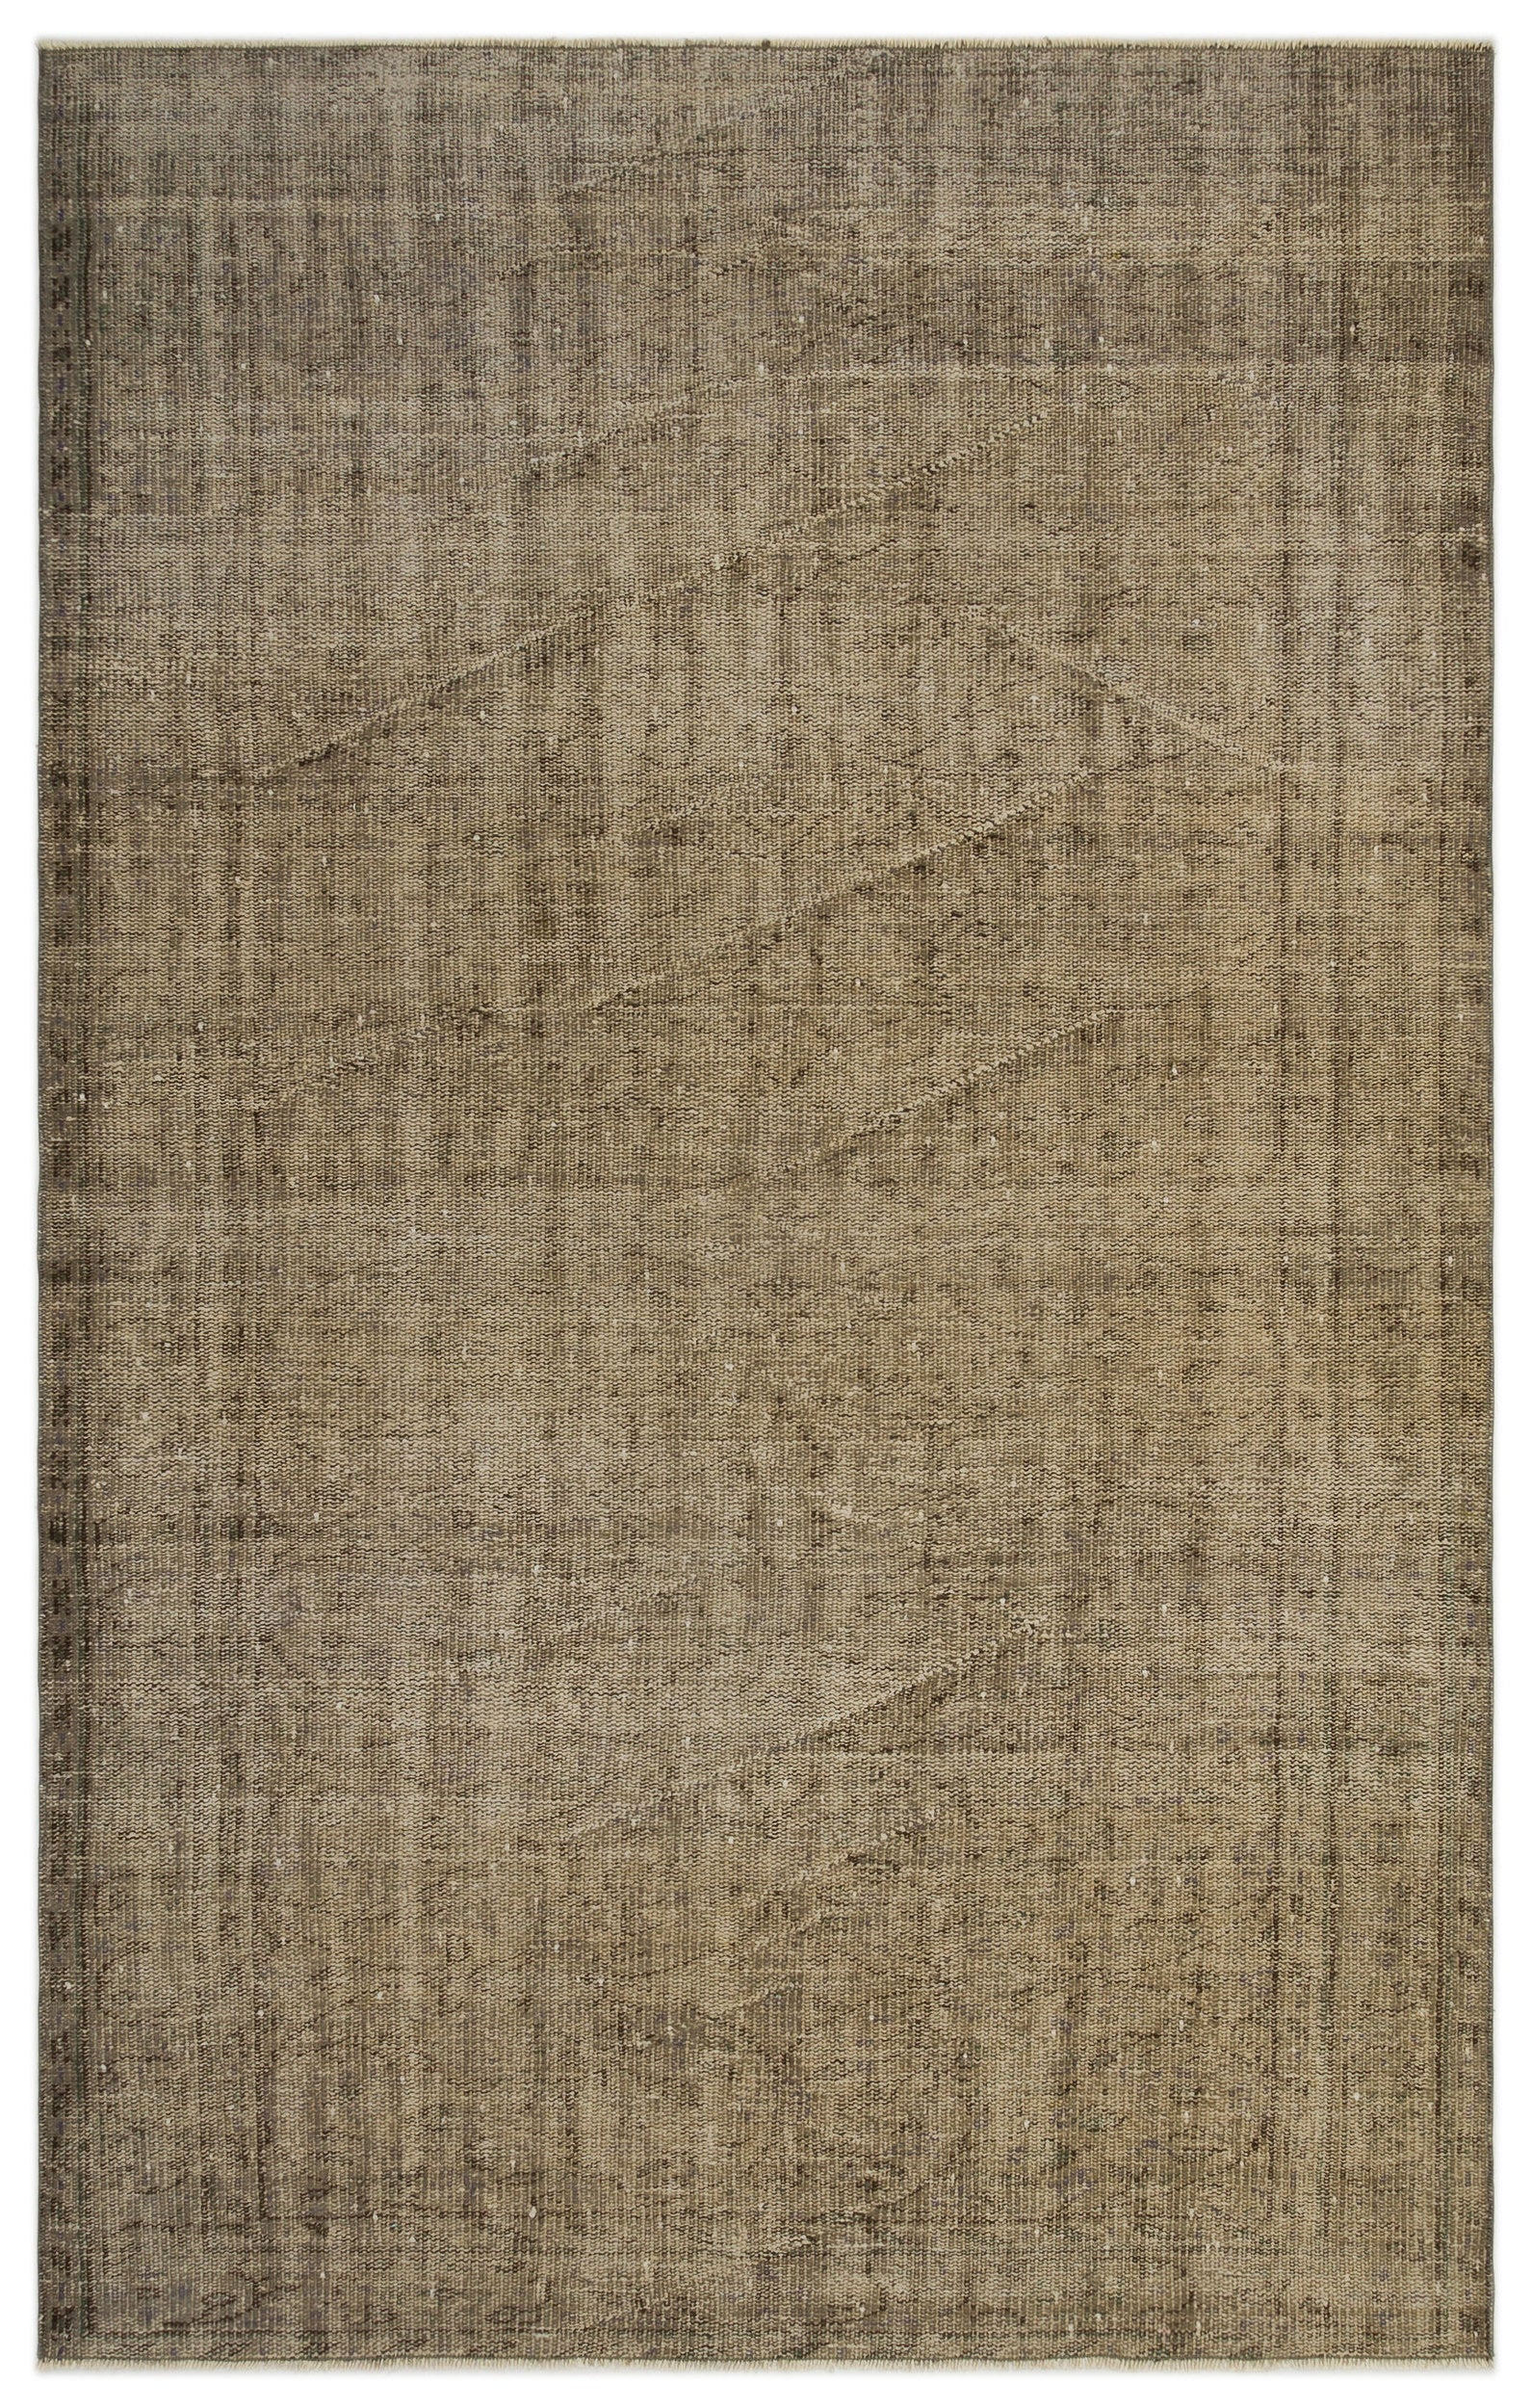 Brown Over Dyed Vintage Rug 4'12'' x 7'10'' ft 152 x 240 cm